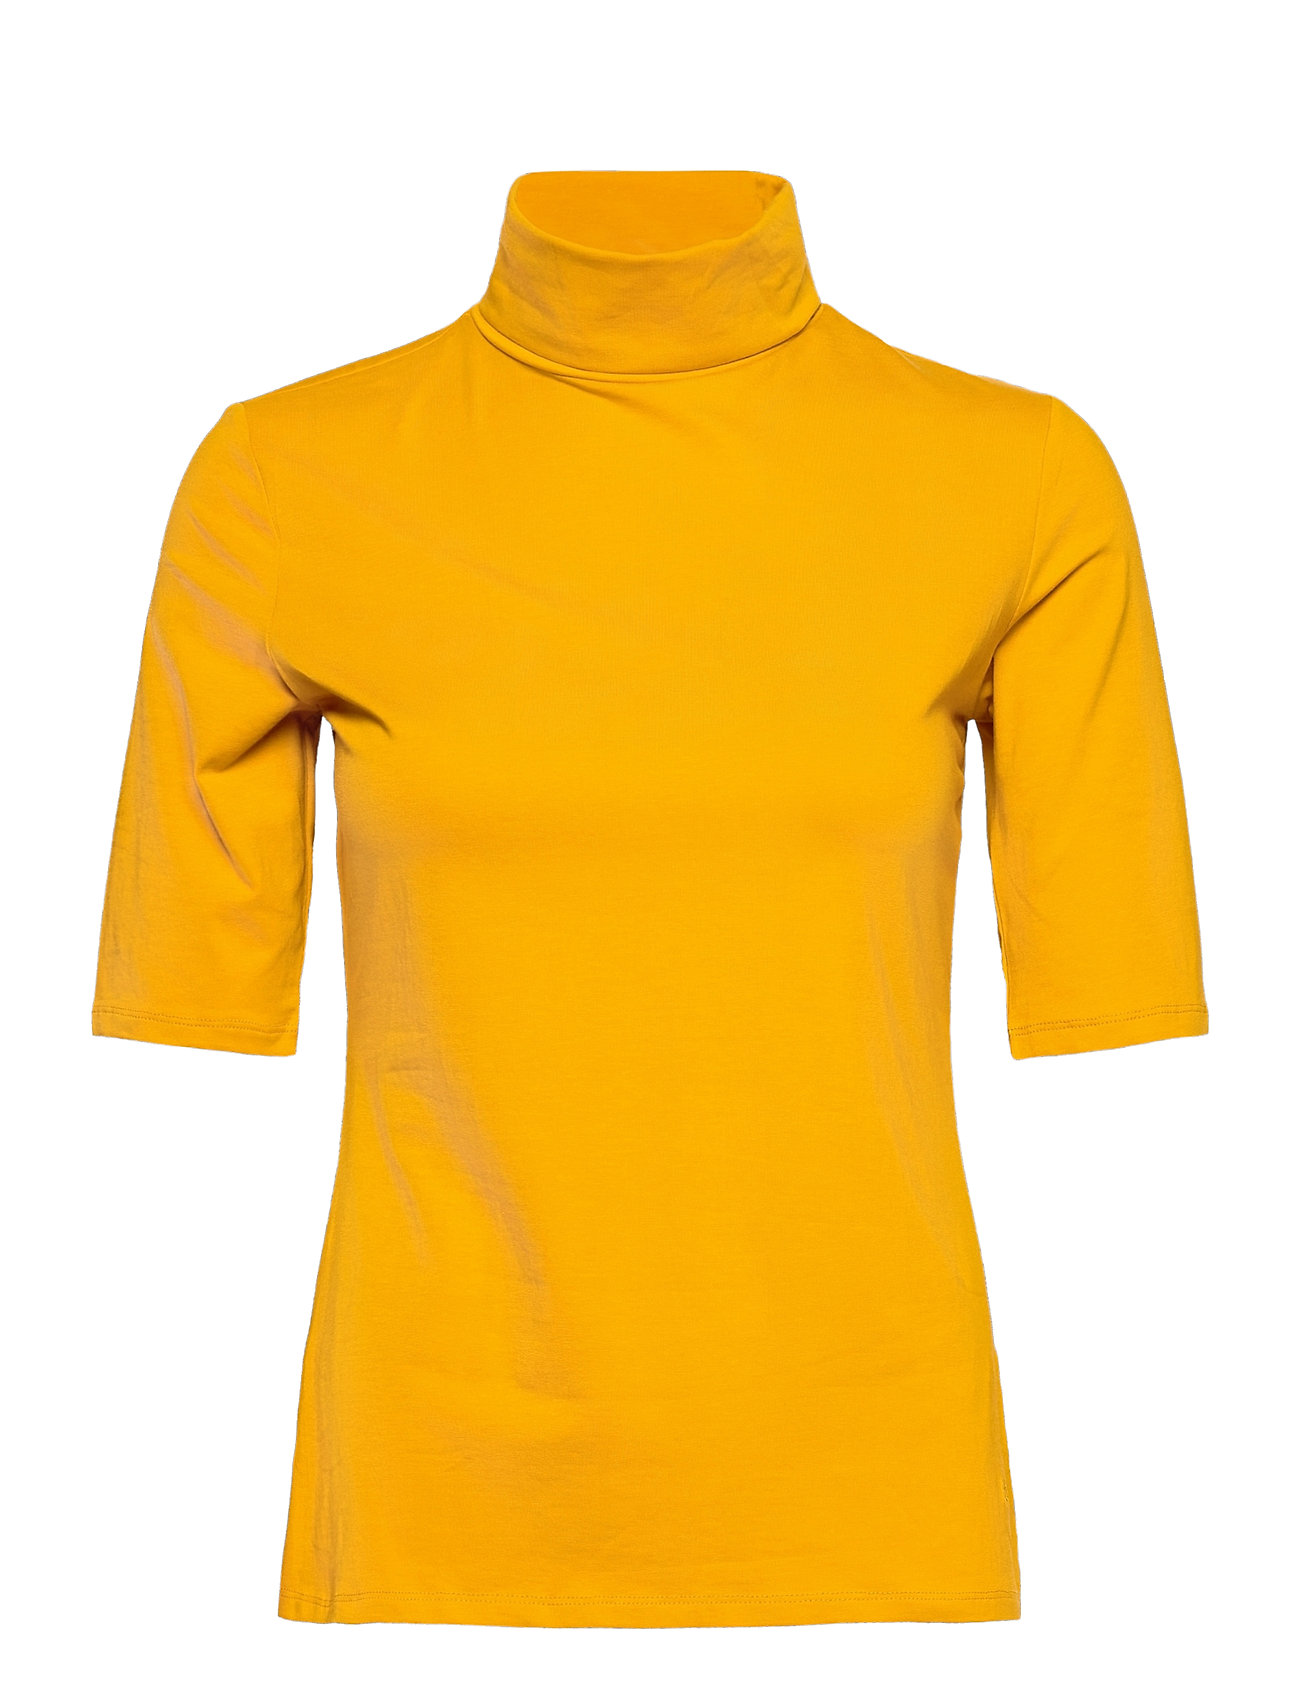 Image of T-Shirts T-shirt Top Gul EDC By Esprit (3445310139)